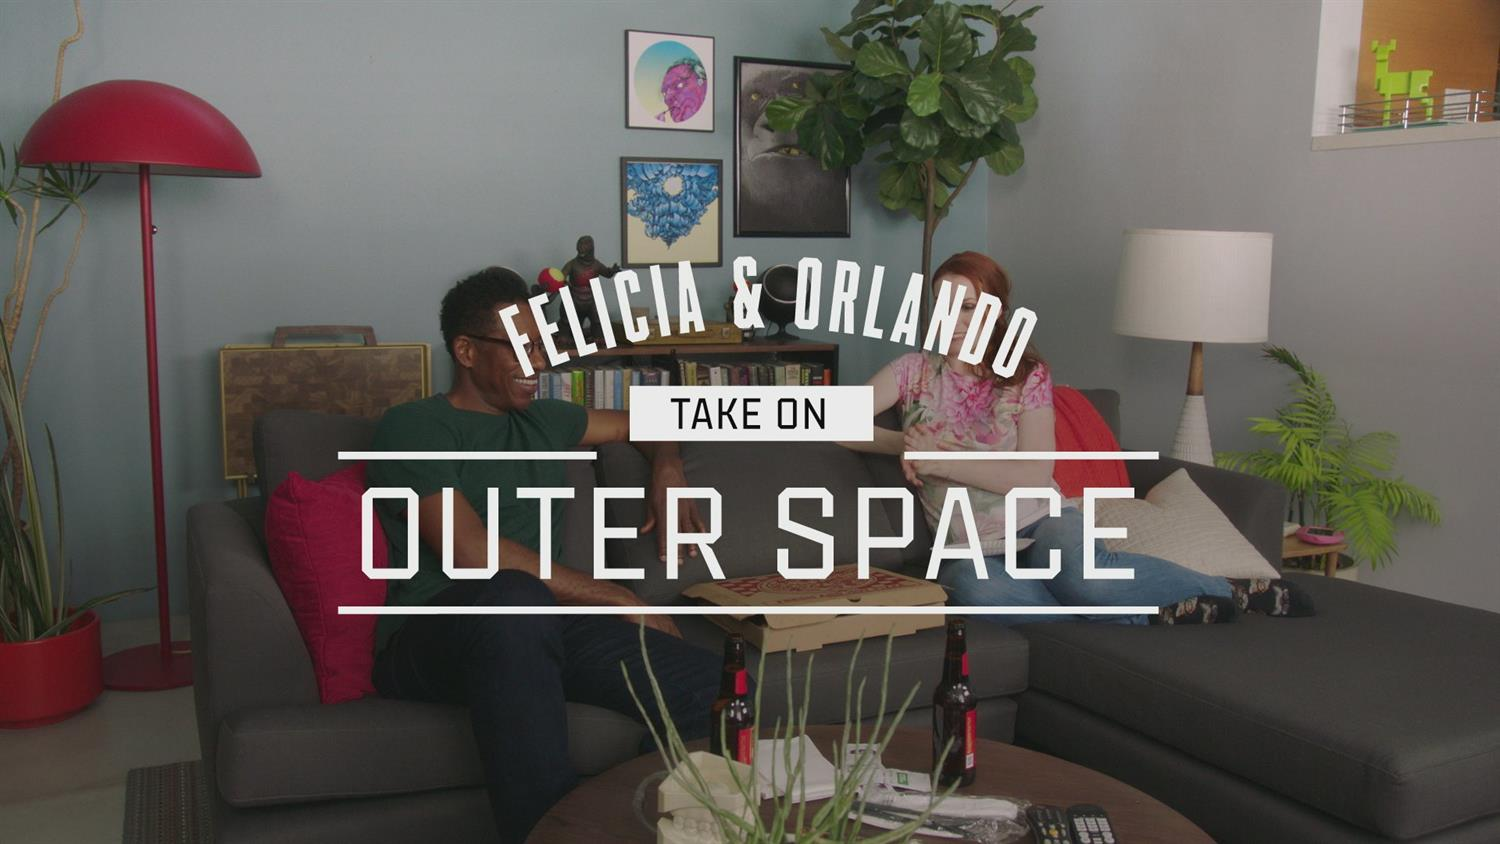 Felicia & Orlando Take On ... Outer Space